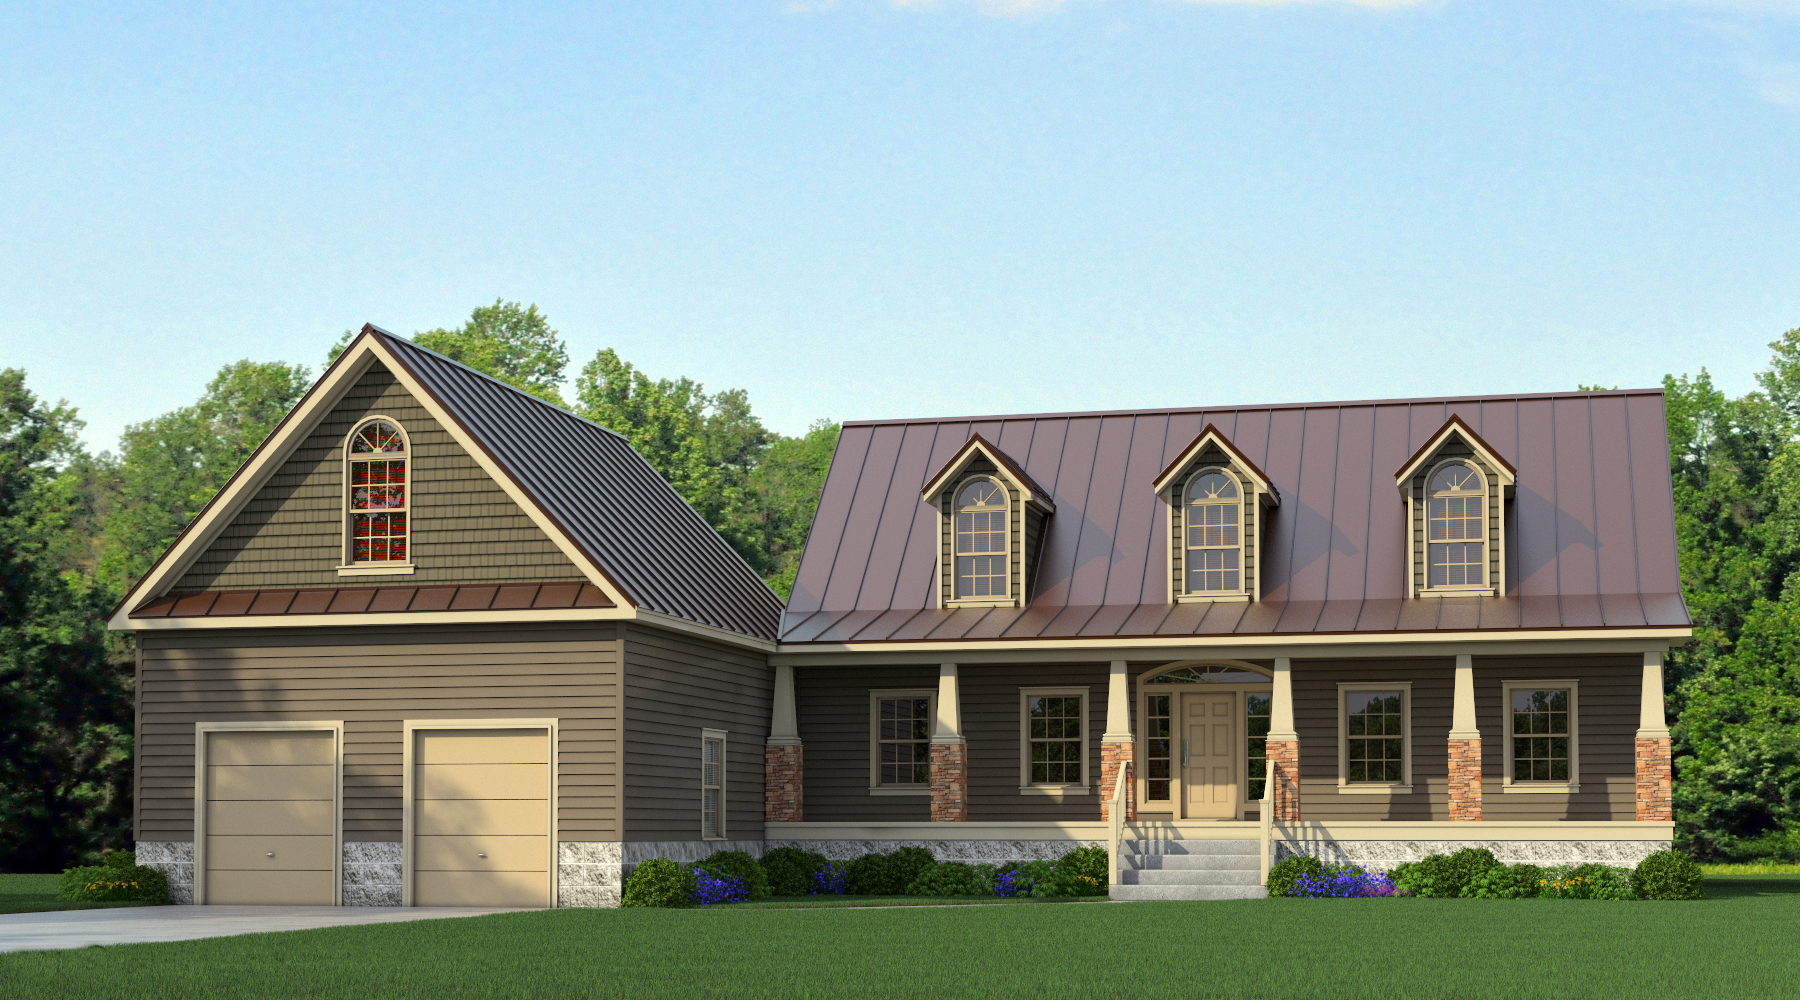 Morton pole barn house plans joy studio design gallery Home building blog